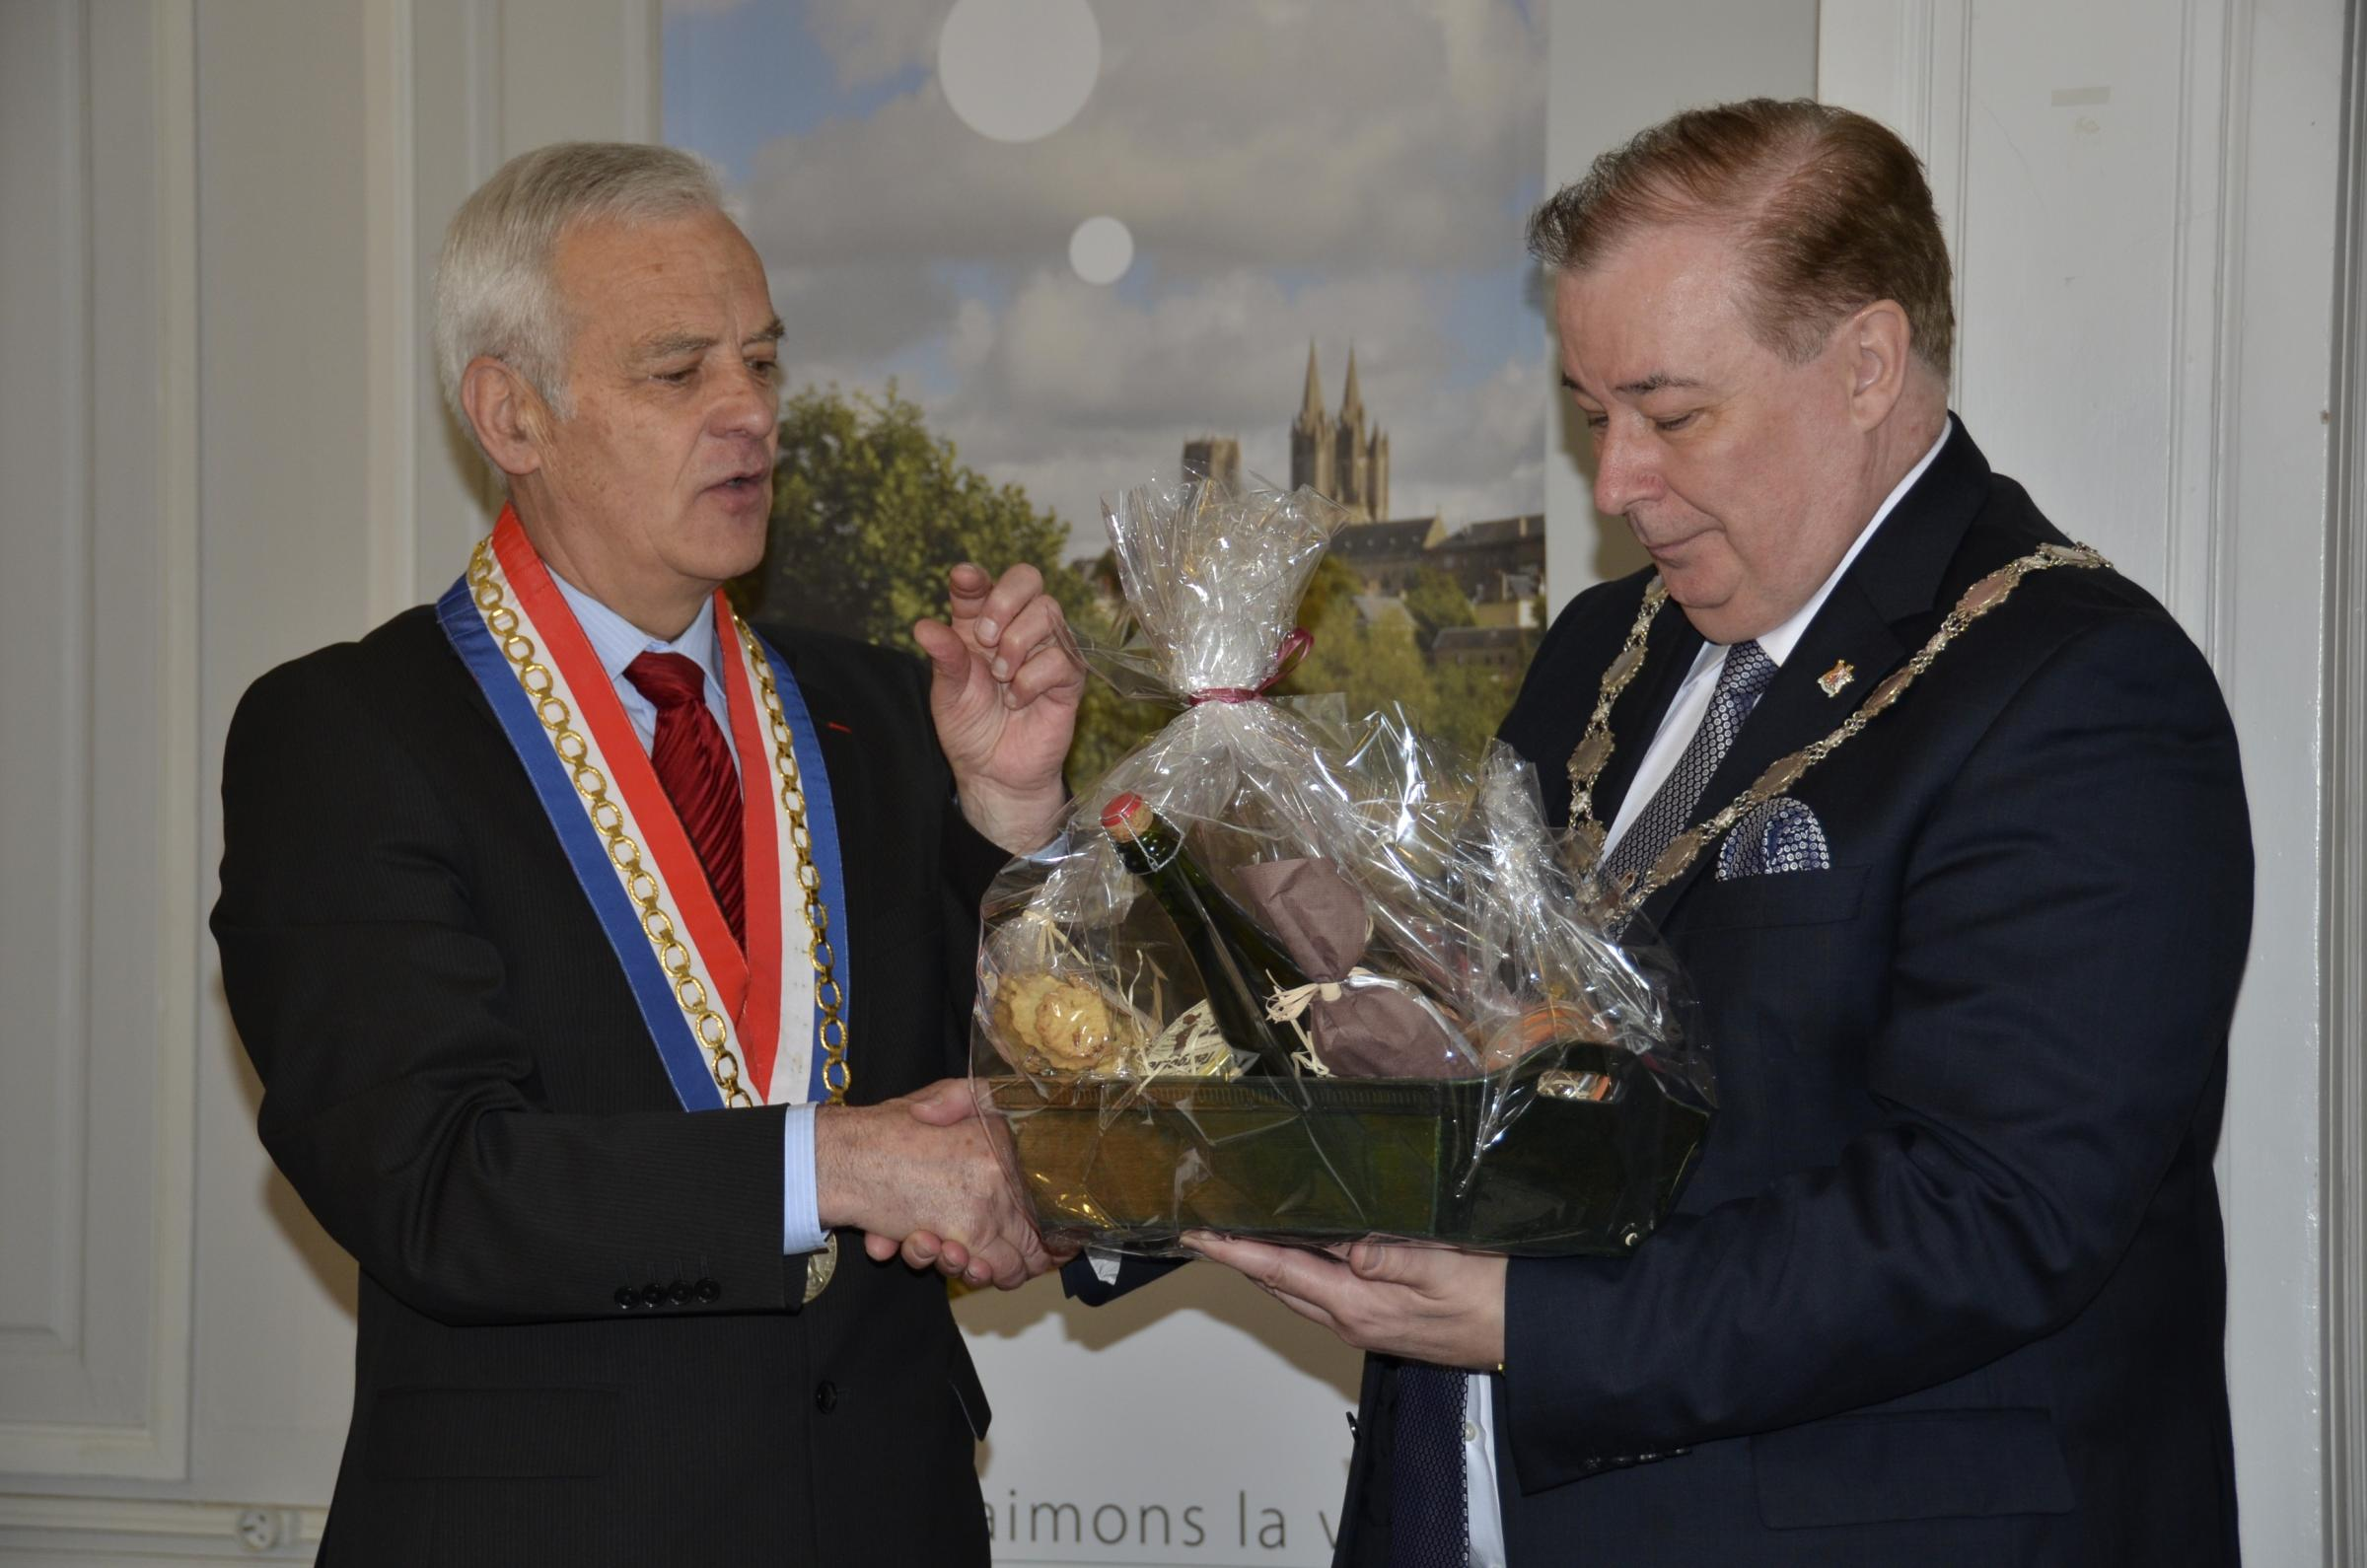 The mayor of Coutances, Monsieur Yves Lamy, presents Coun Mike Gibbons with a basket of deli